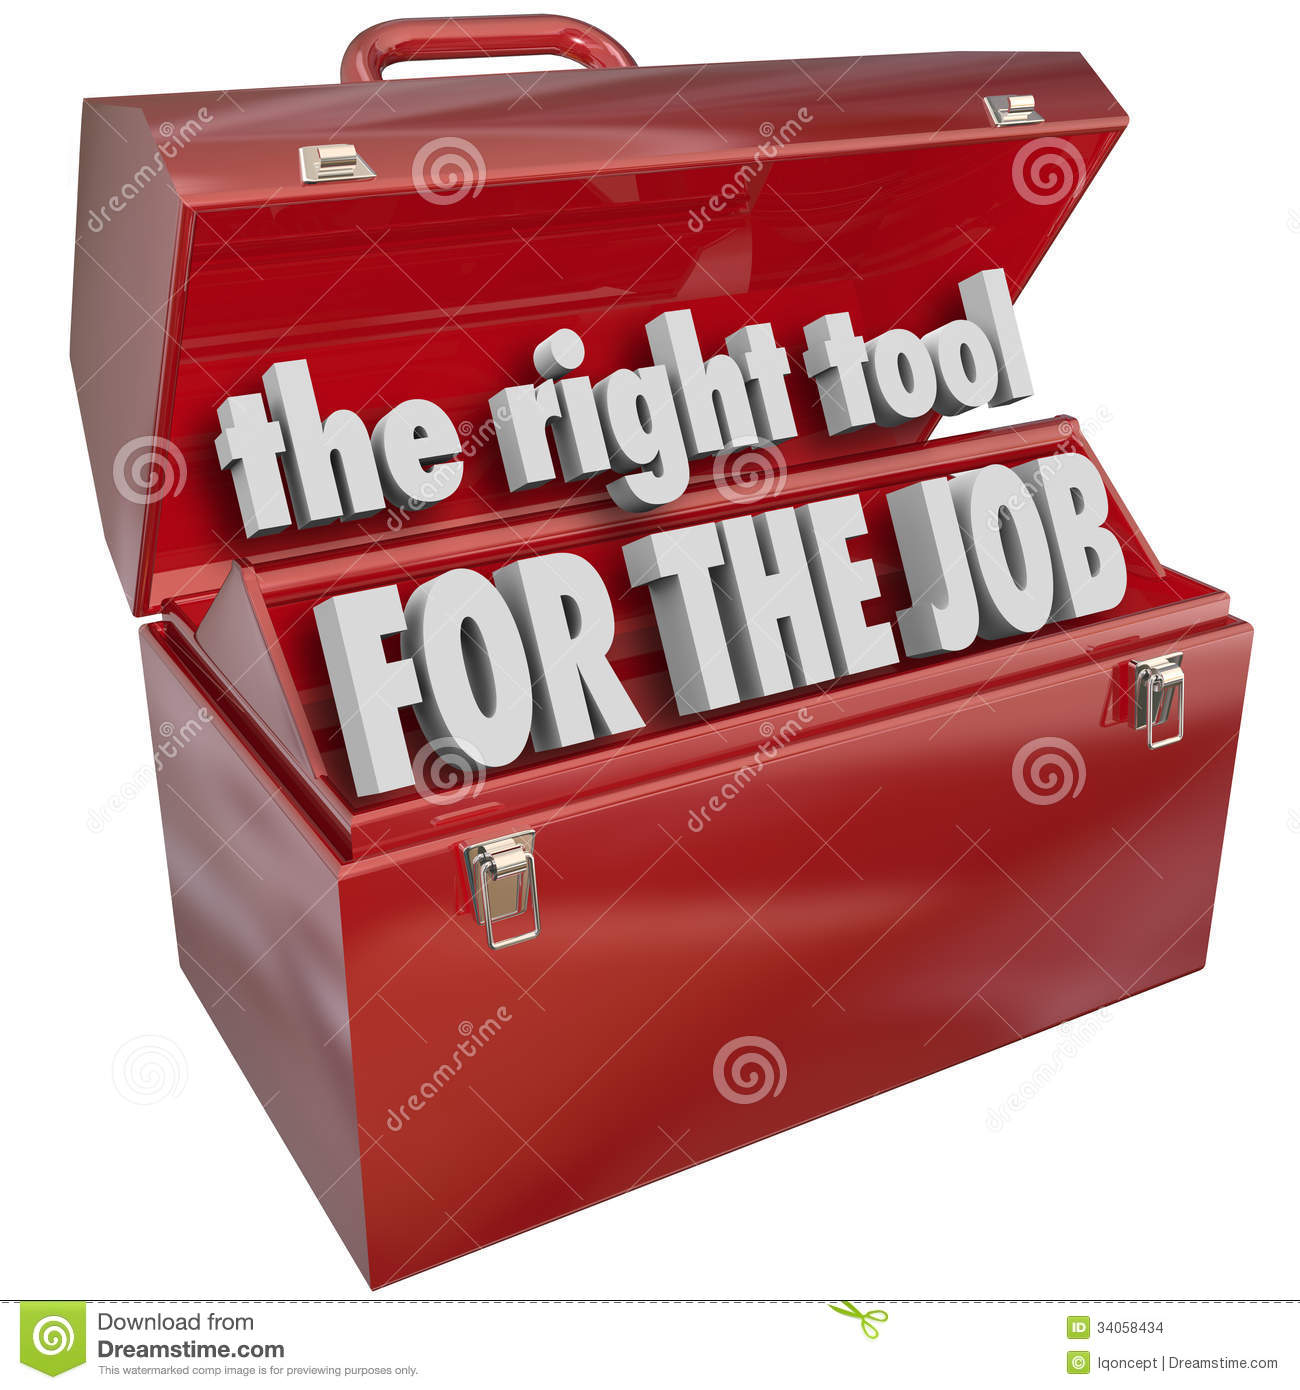 The Right Tool for the Job words in a red metal toolbox to illustrate